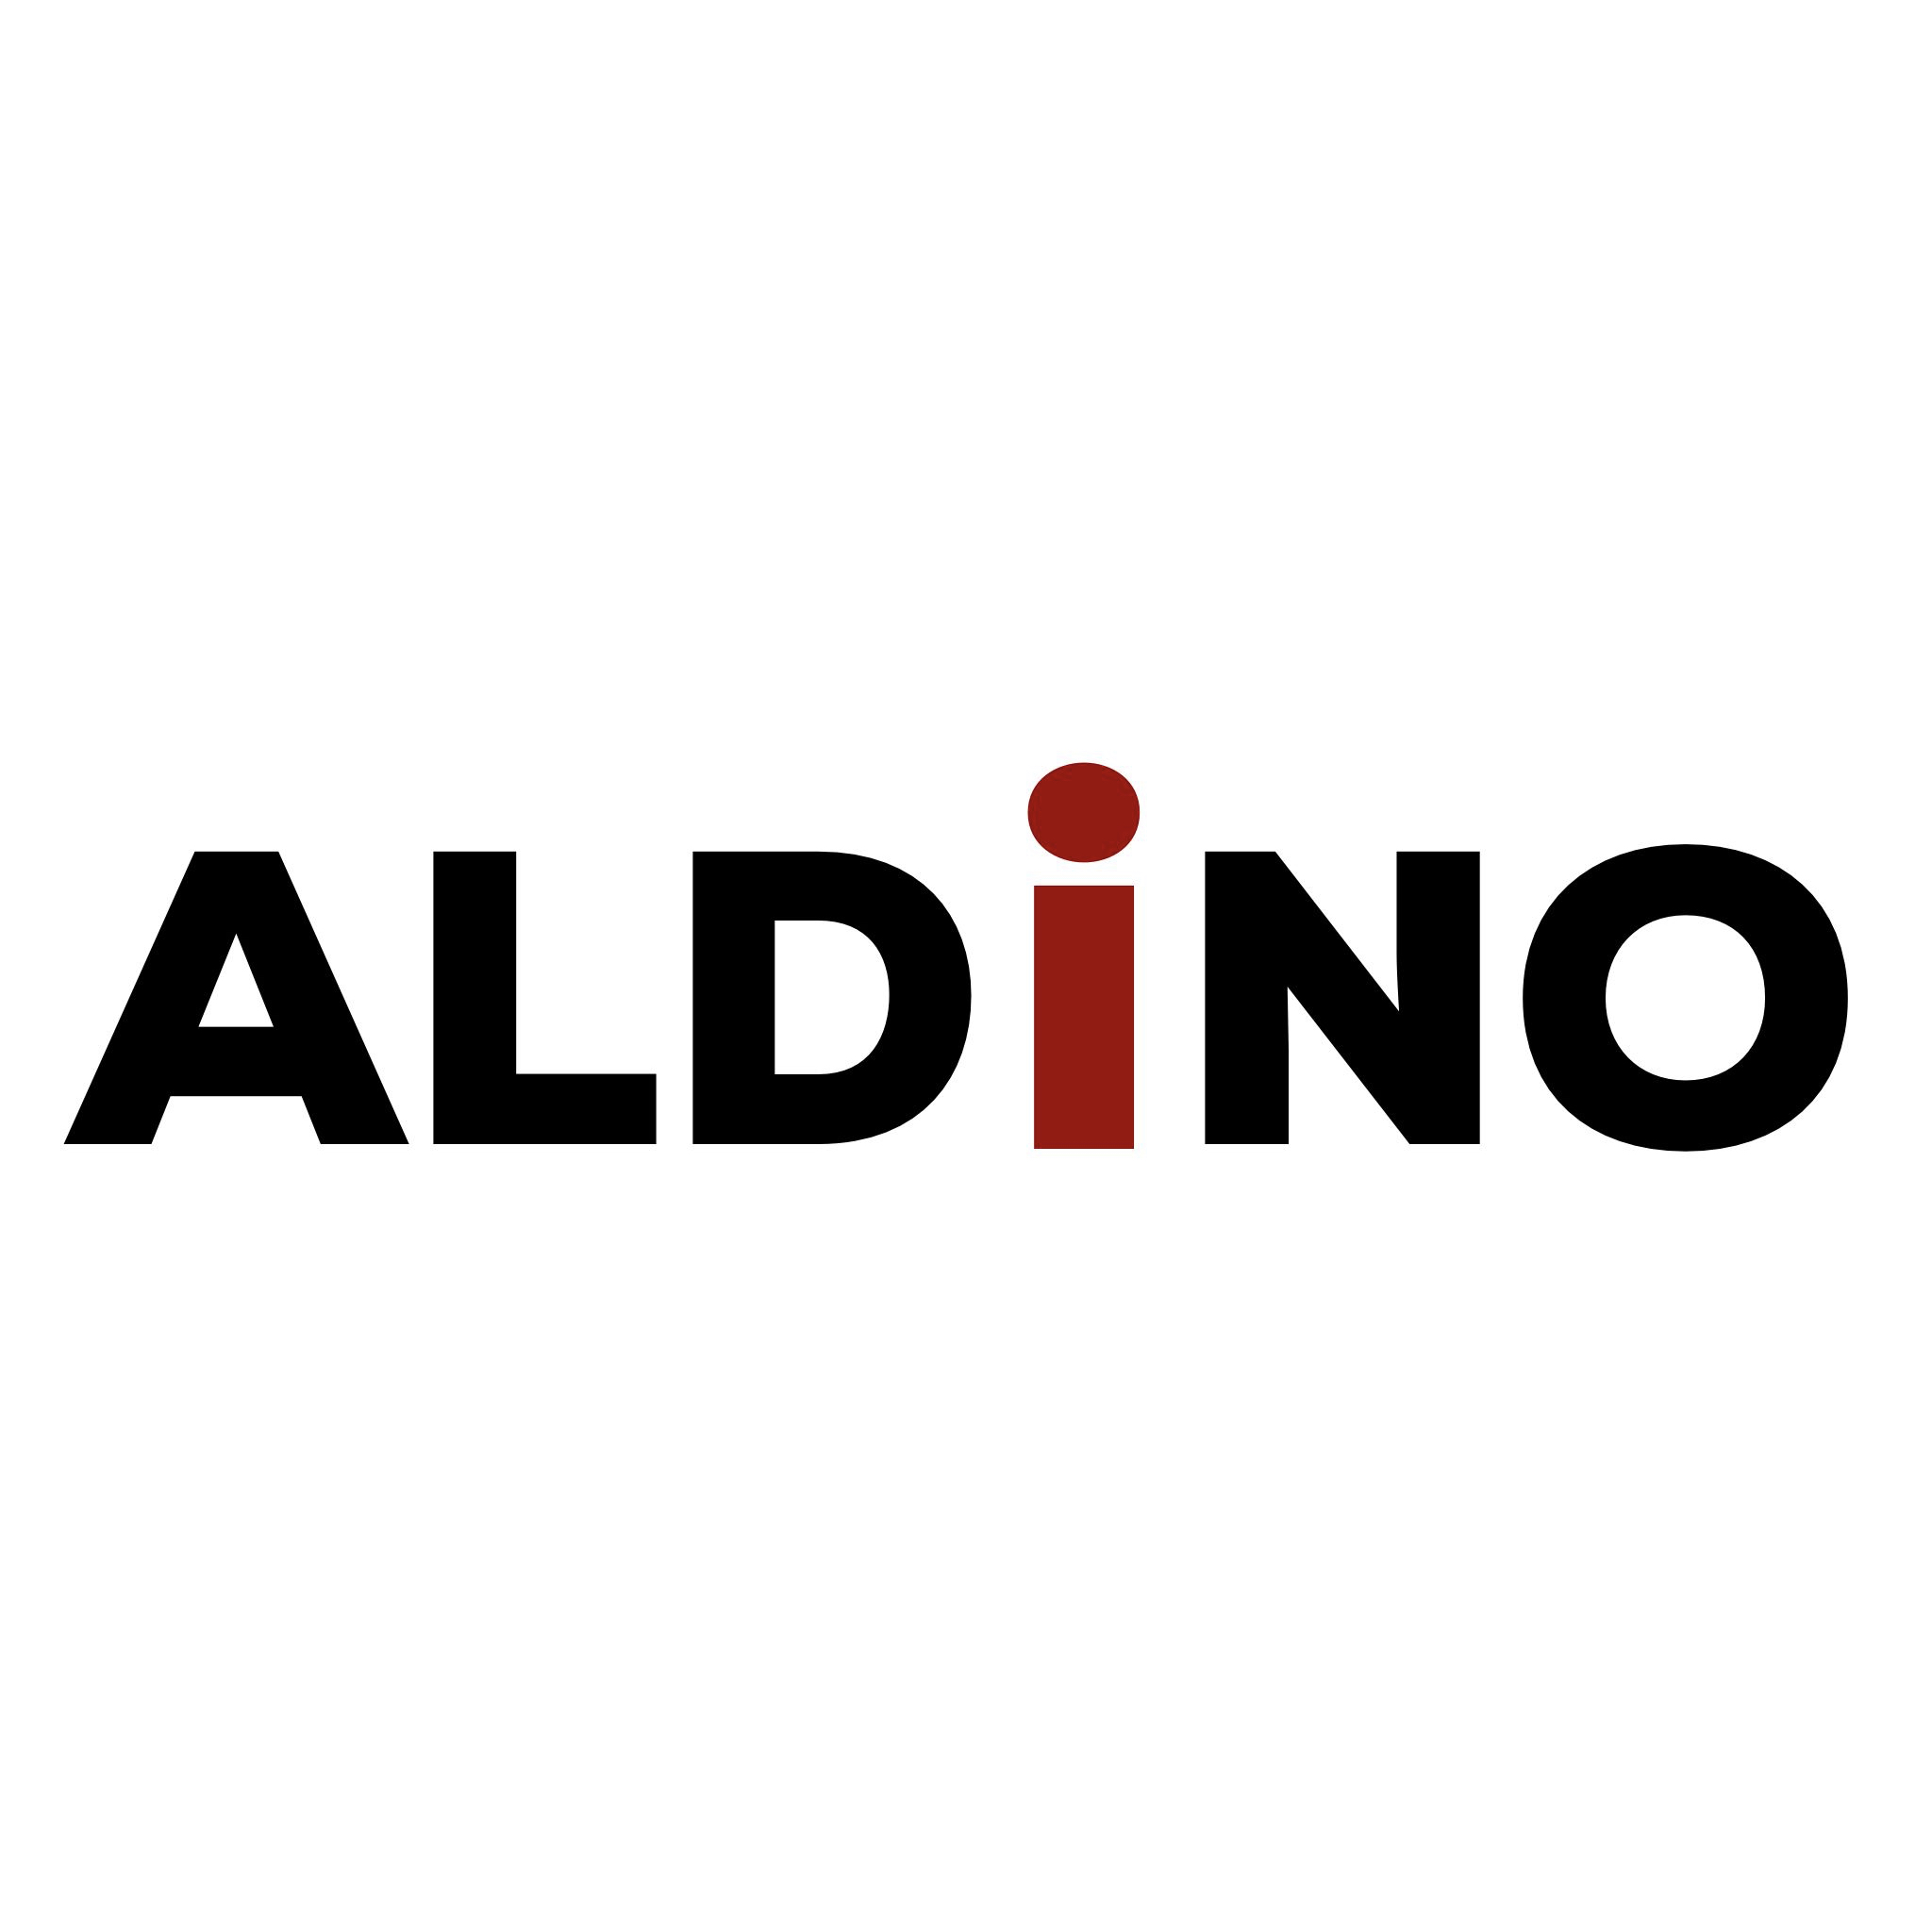 Aldino at The Vineyard , Lunch & Dinner  1203 N.W. Loop 1604 #101, San Antonio, 78258  P 210-340-0000    Aldino's Dinner Menu     Call for Reservation